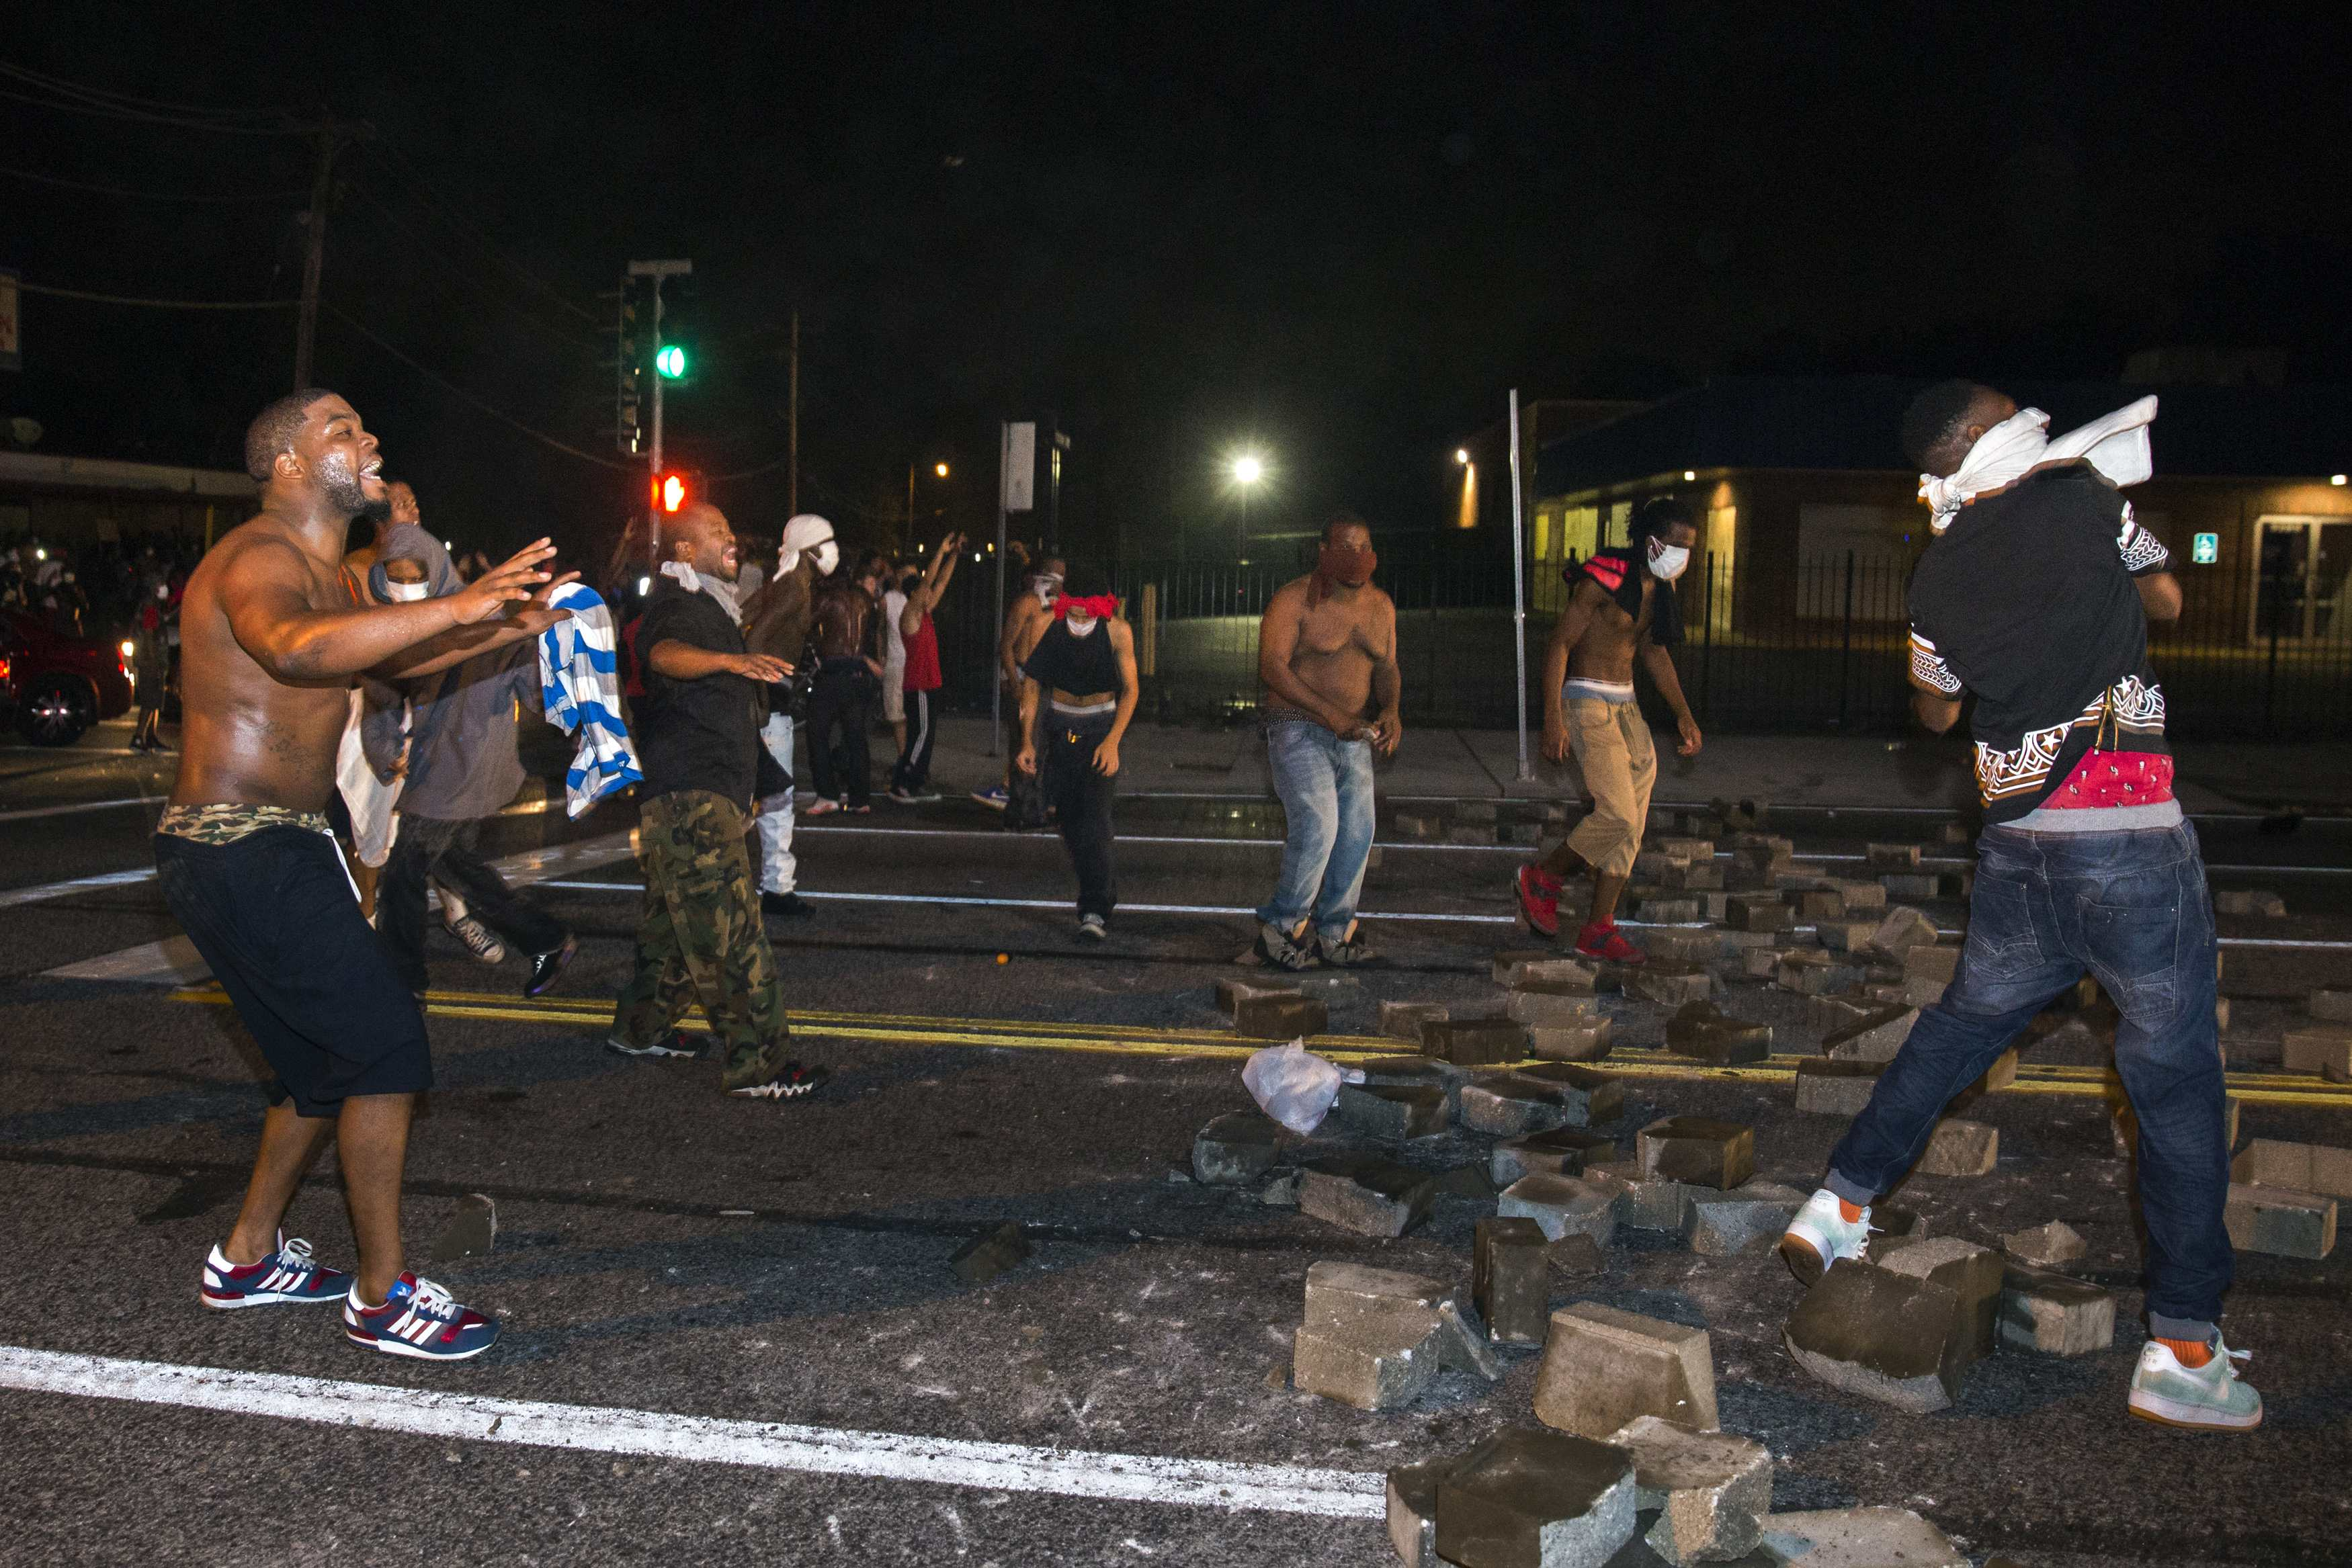 National Guard called in as chaos continues in Missouri town